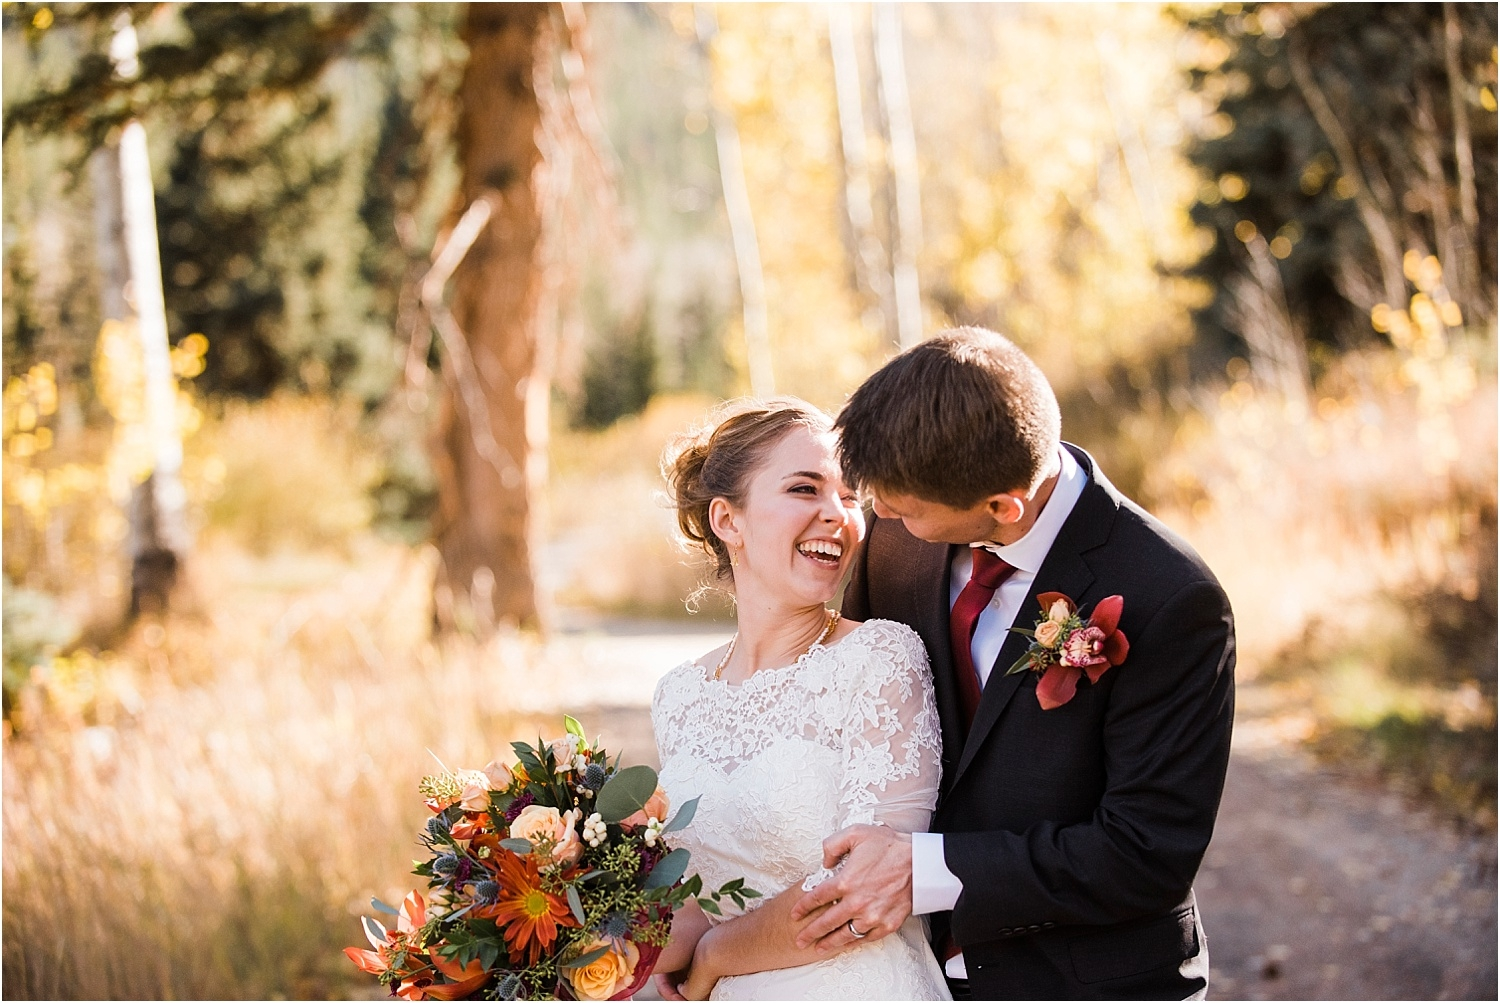 Buena_Vista_Destination_Wedding_Photographer_Apollo_Fields_Colorado_0024.jpg